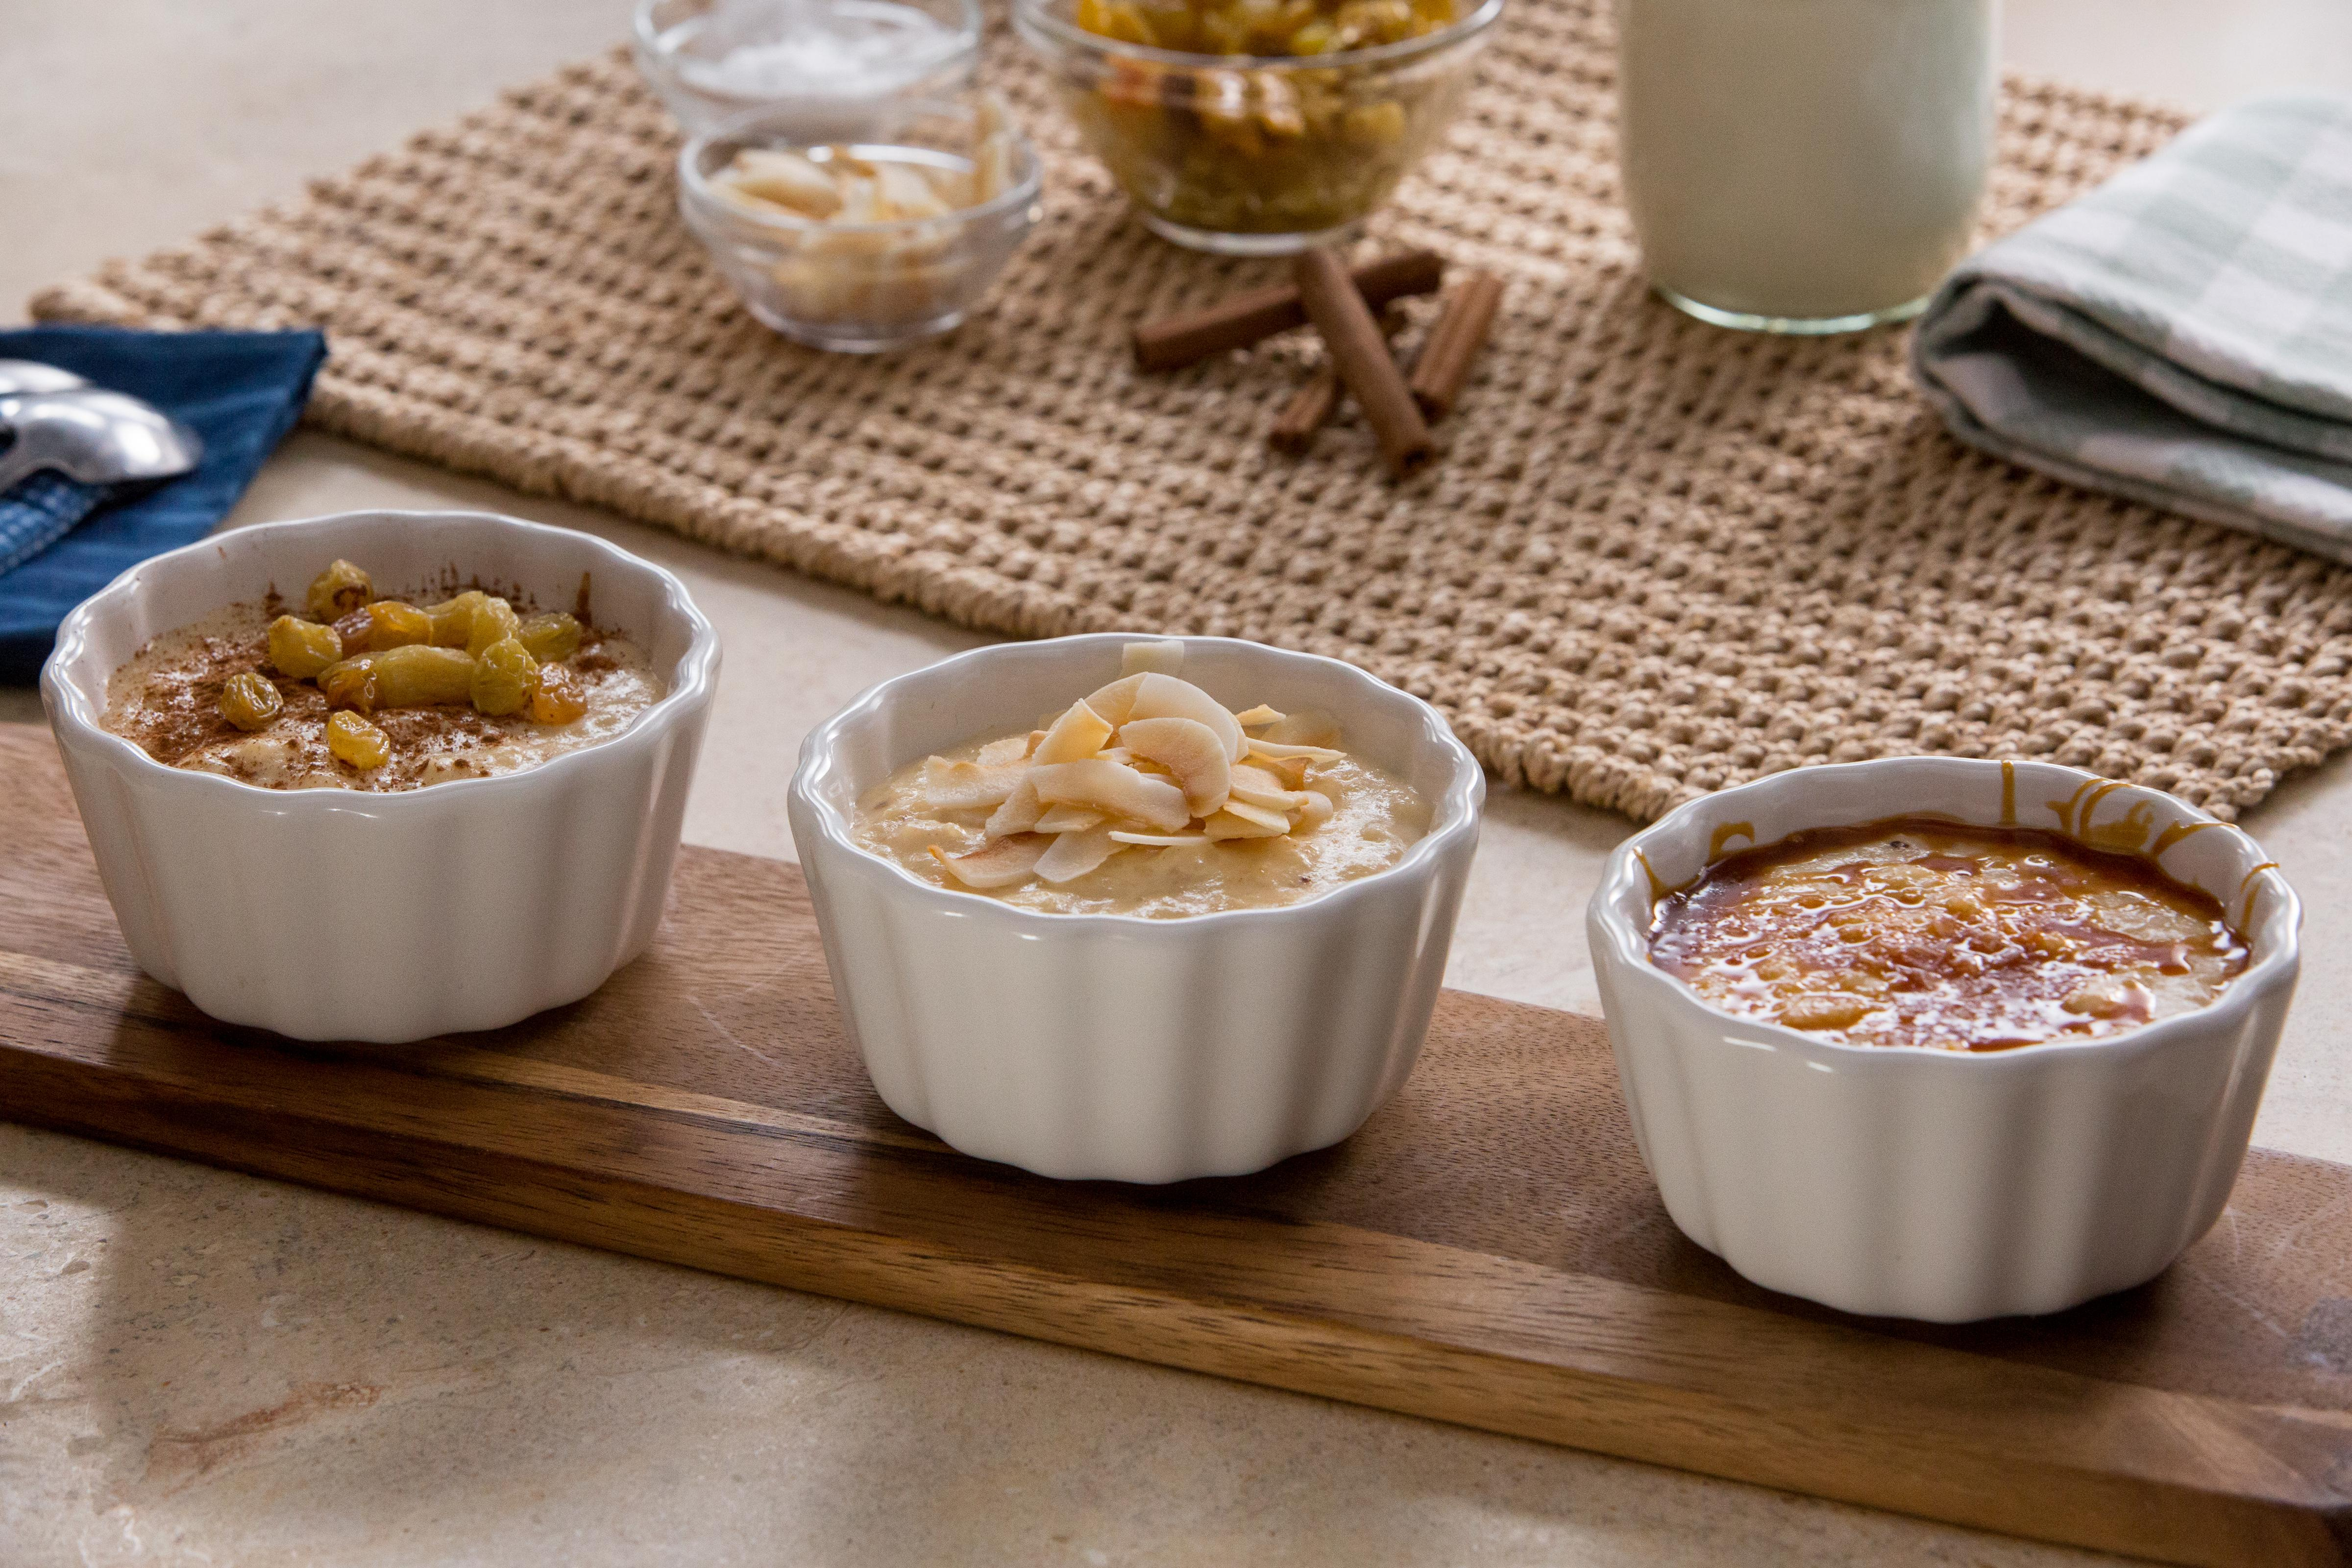 Try these 3 sweet twists on rice pudding